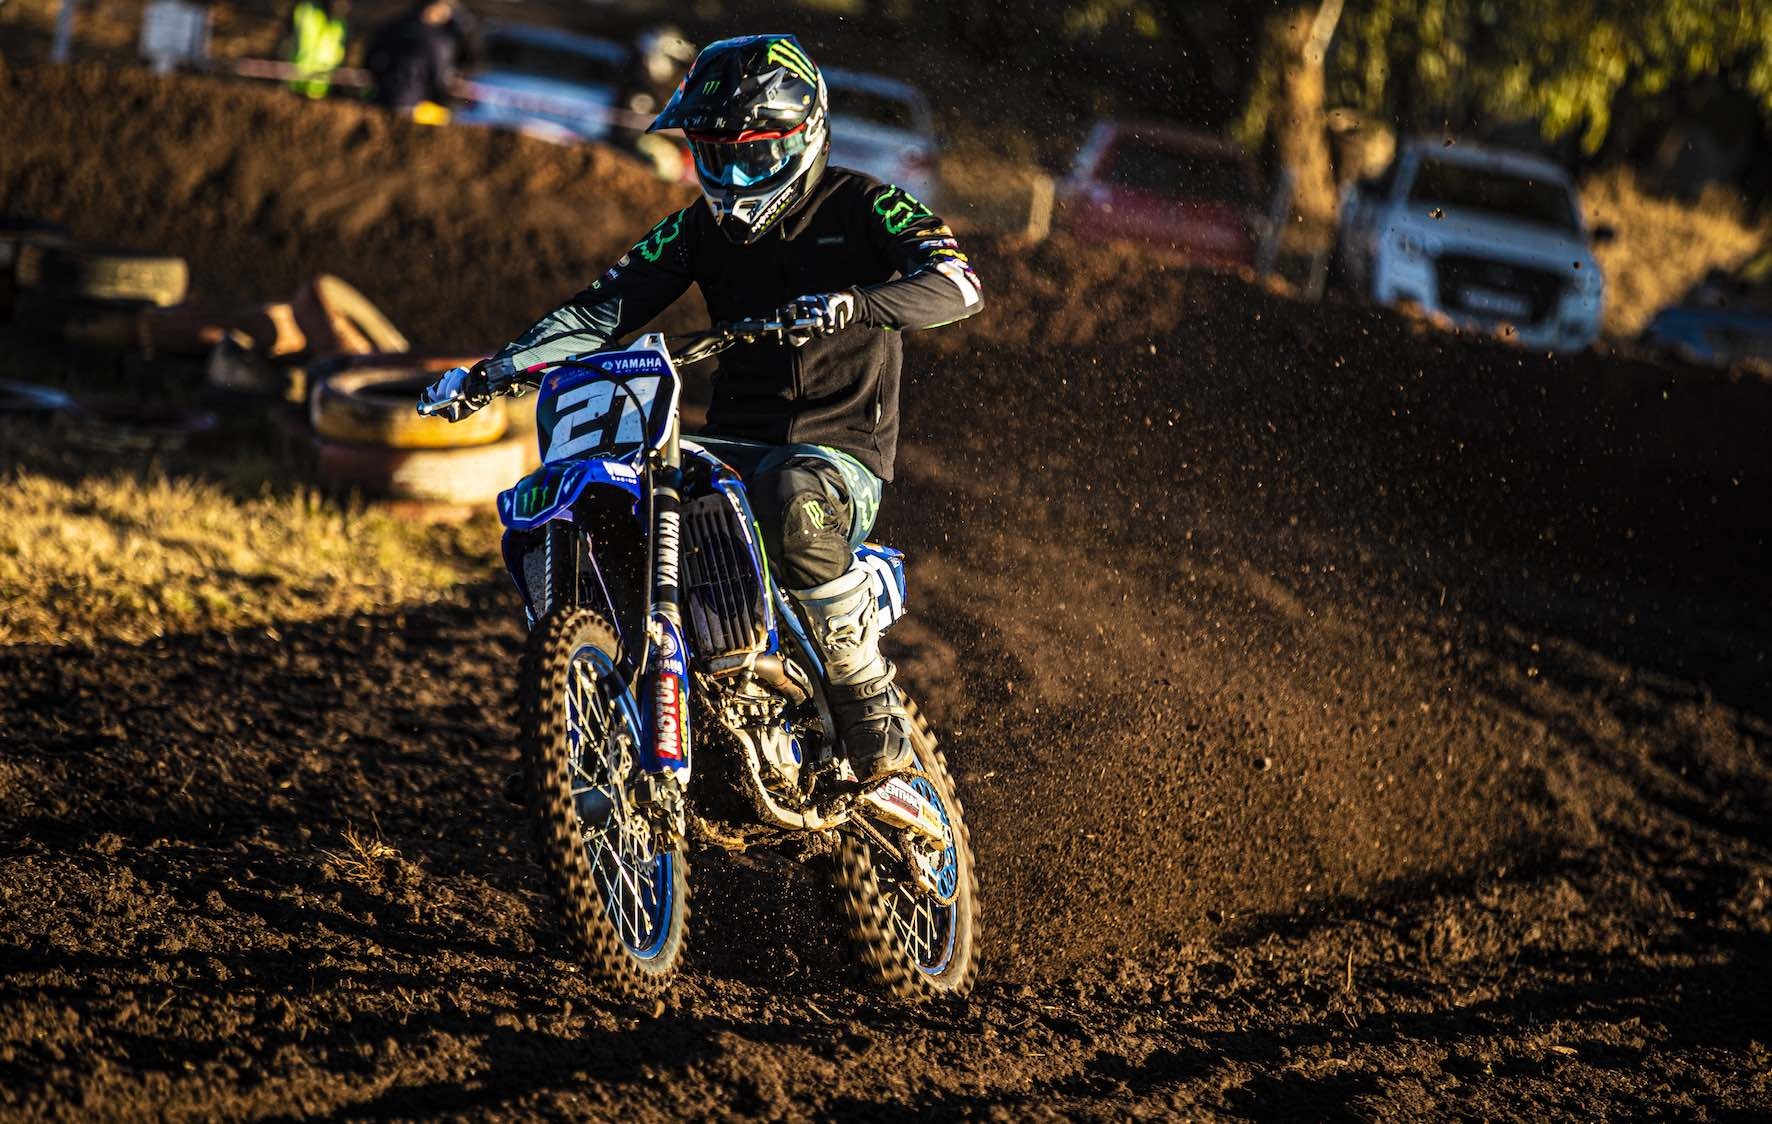 David Goosen racing Round 4 of the 2019 SA Motocross Nationals at Dirt Bronco